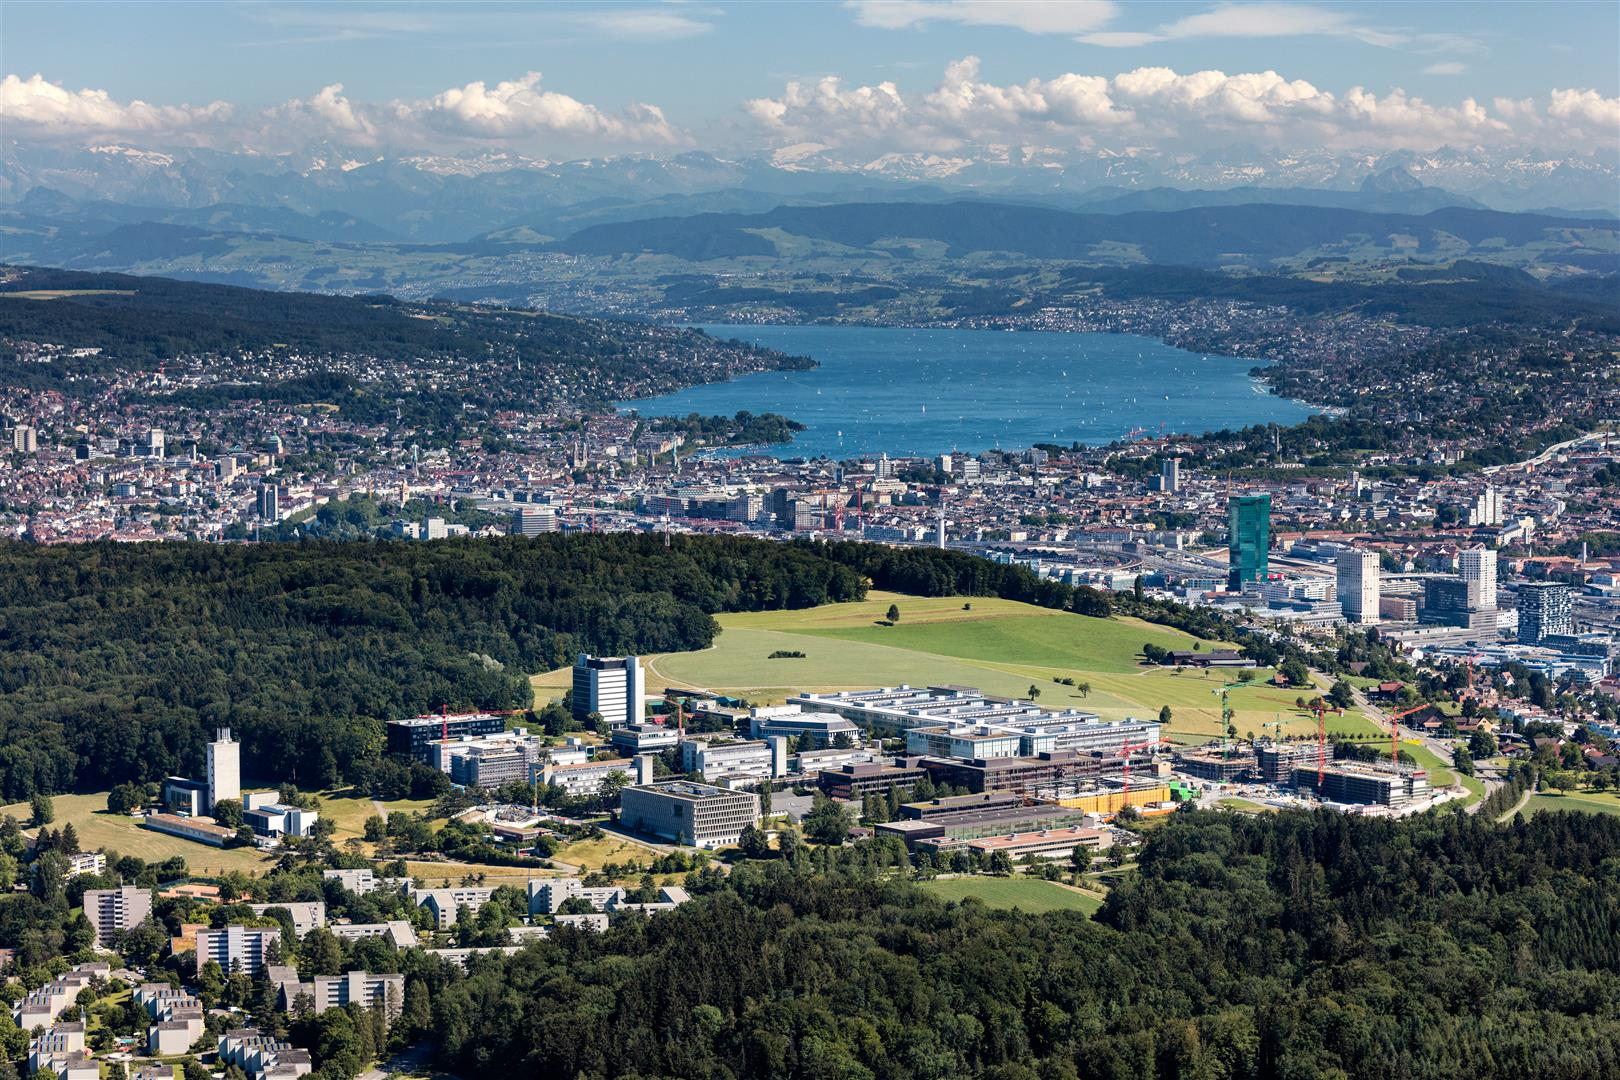 The Hönggerberg campus was built in 1961 to further develop ETH Zurich. © ETH Zurich/Marco Carocari